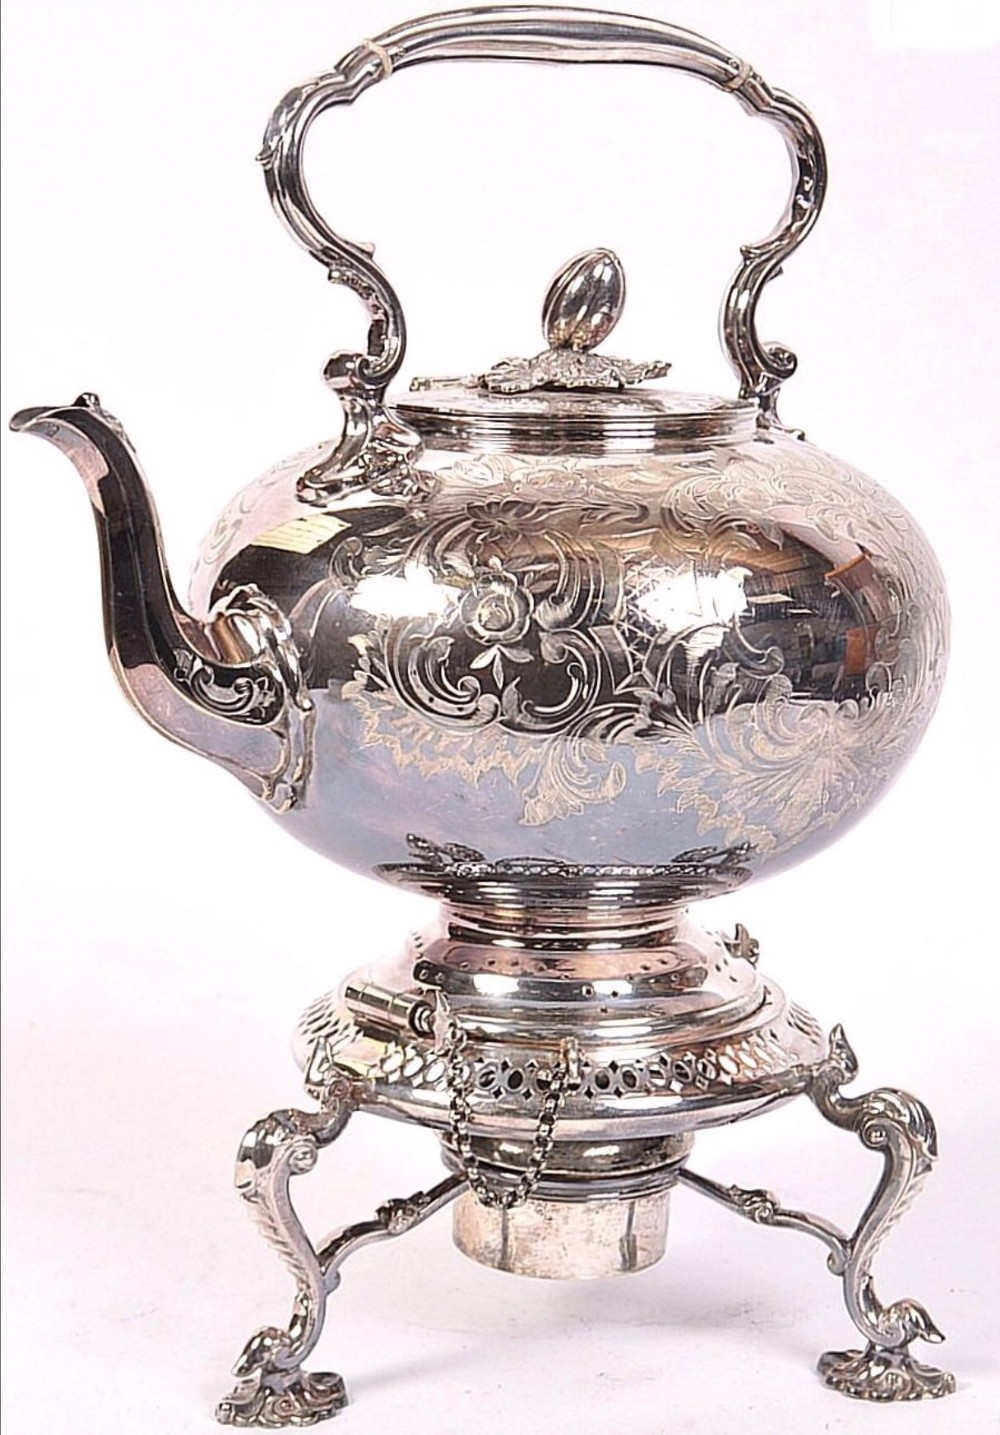 a large silver plated kettle on stand